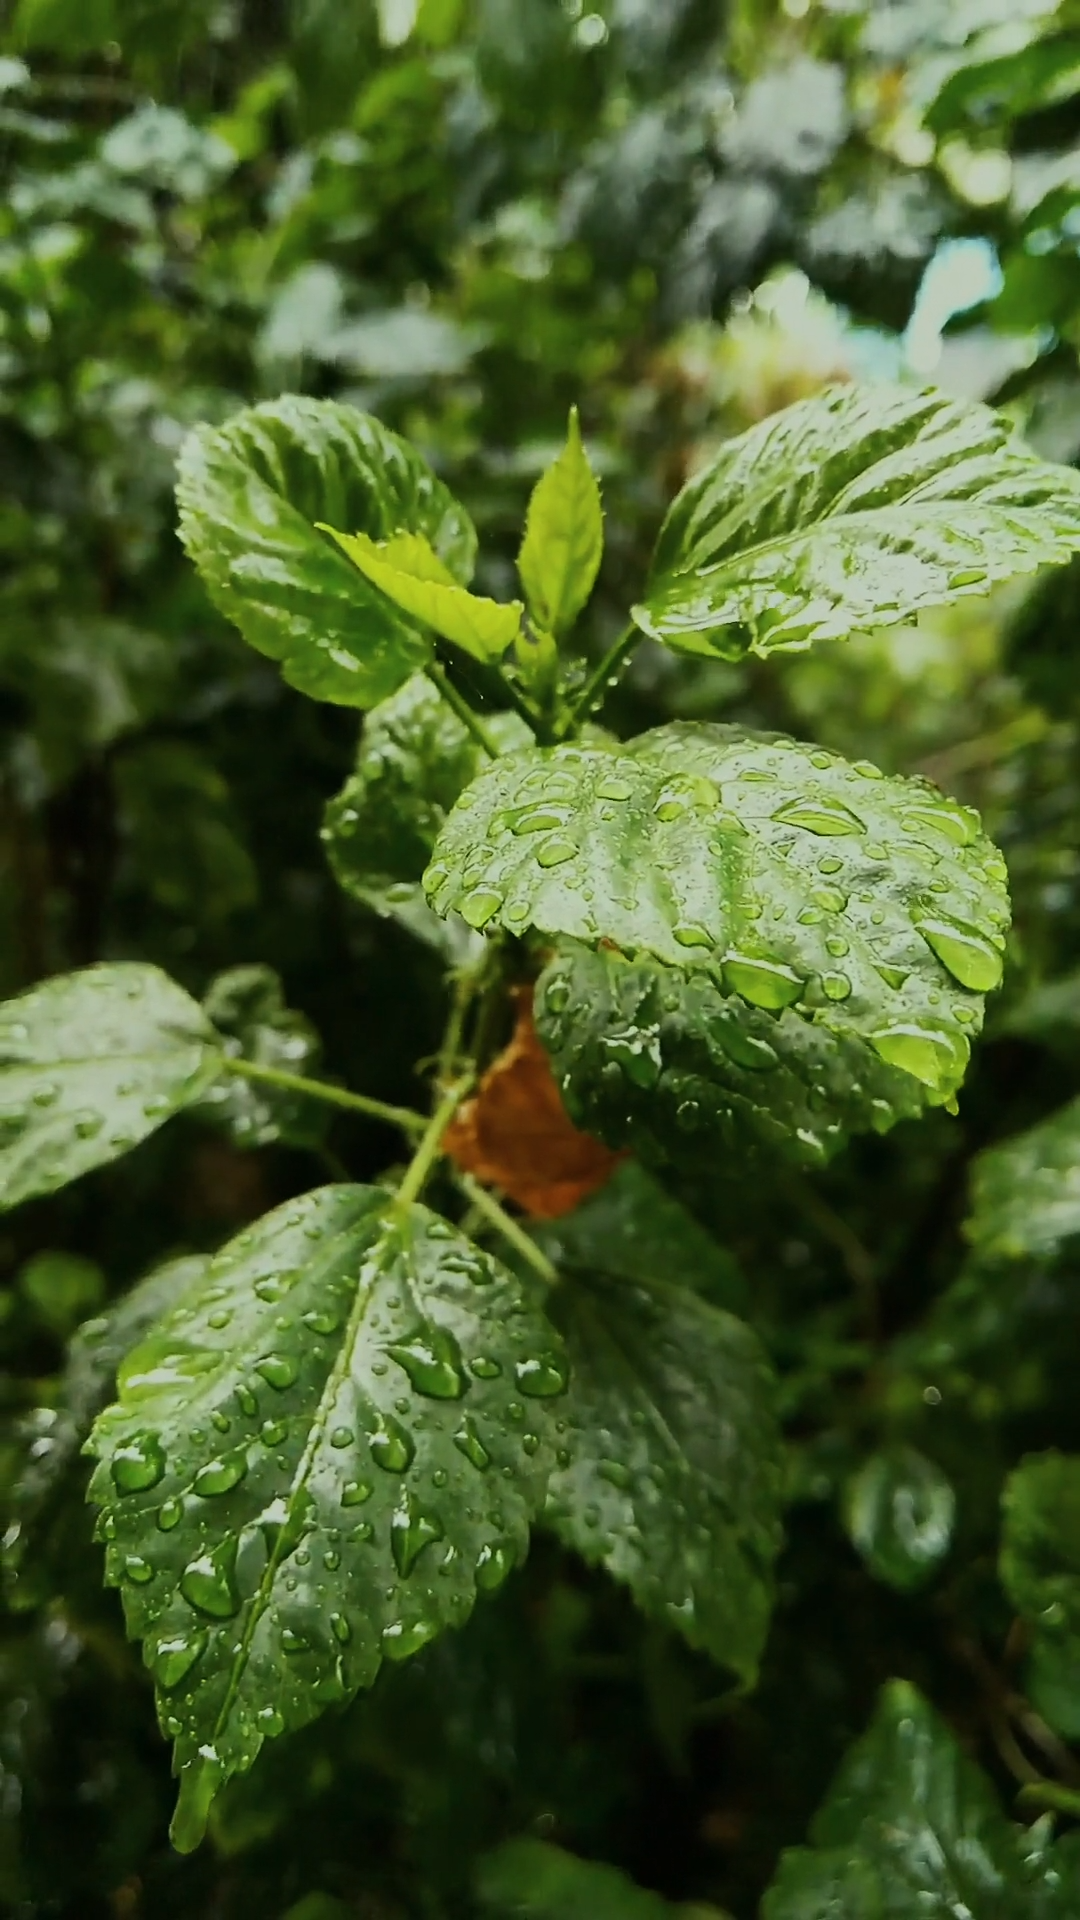 Rain Drops On Leaves Of The Plants